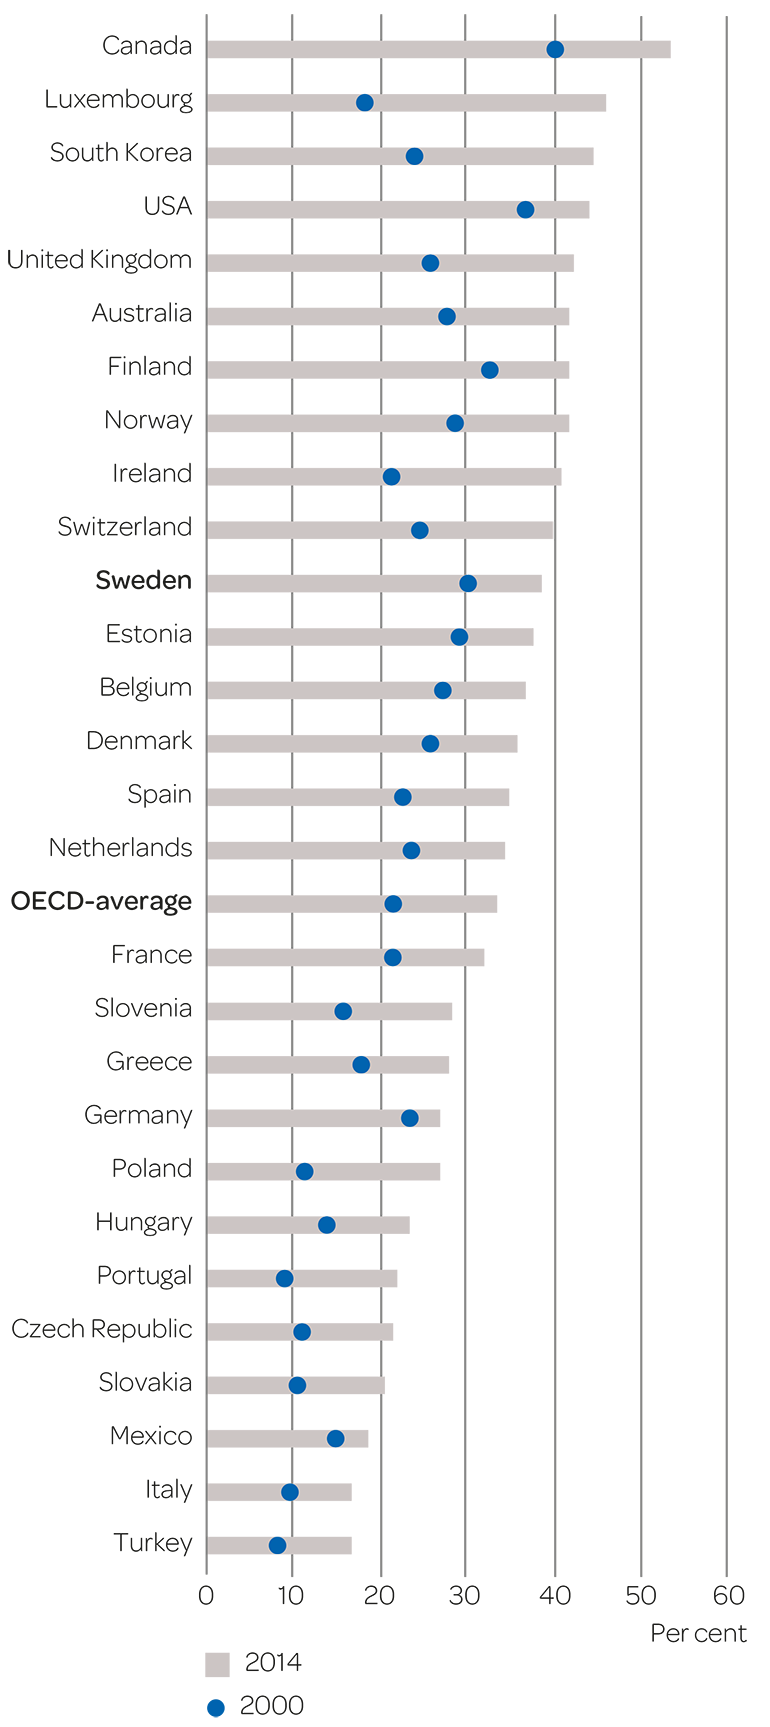 Proportion of women and men in the adult population (25–64) with at least two years of tertiary education (ISCED 5–8) in 2000 and 2014.